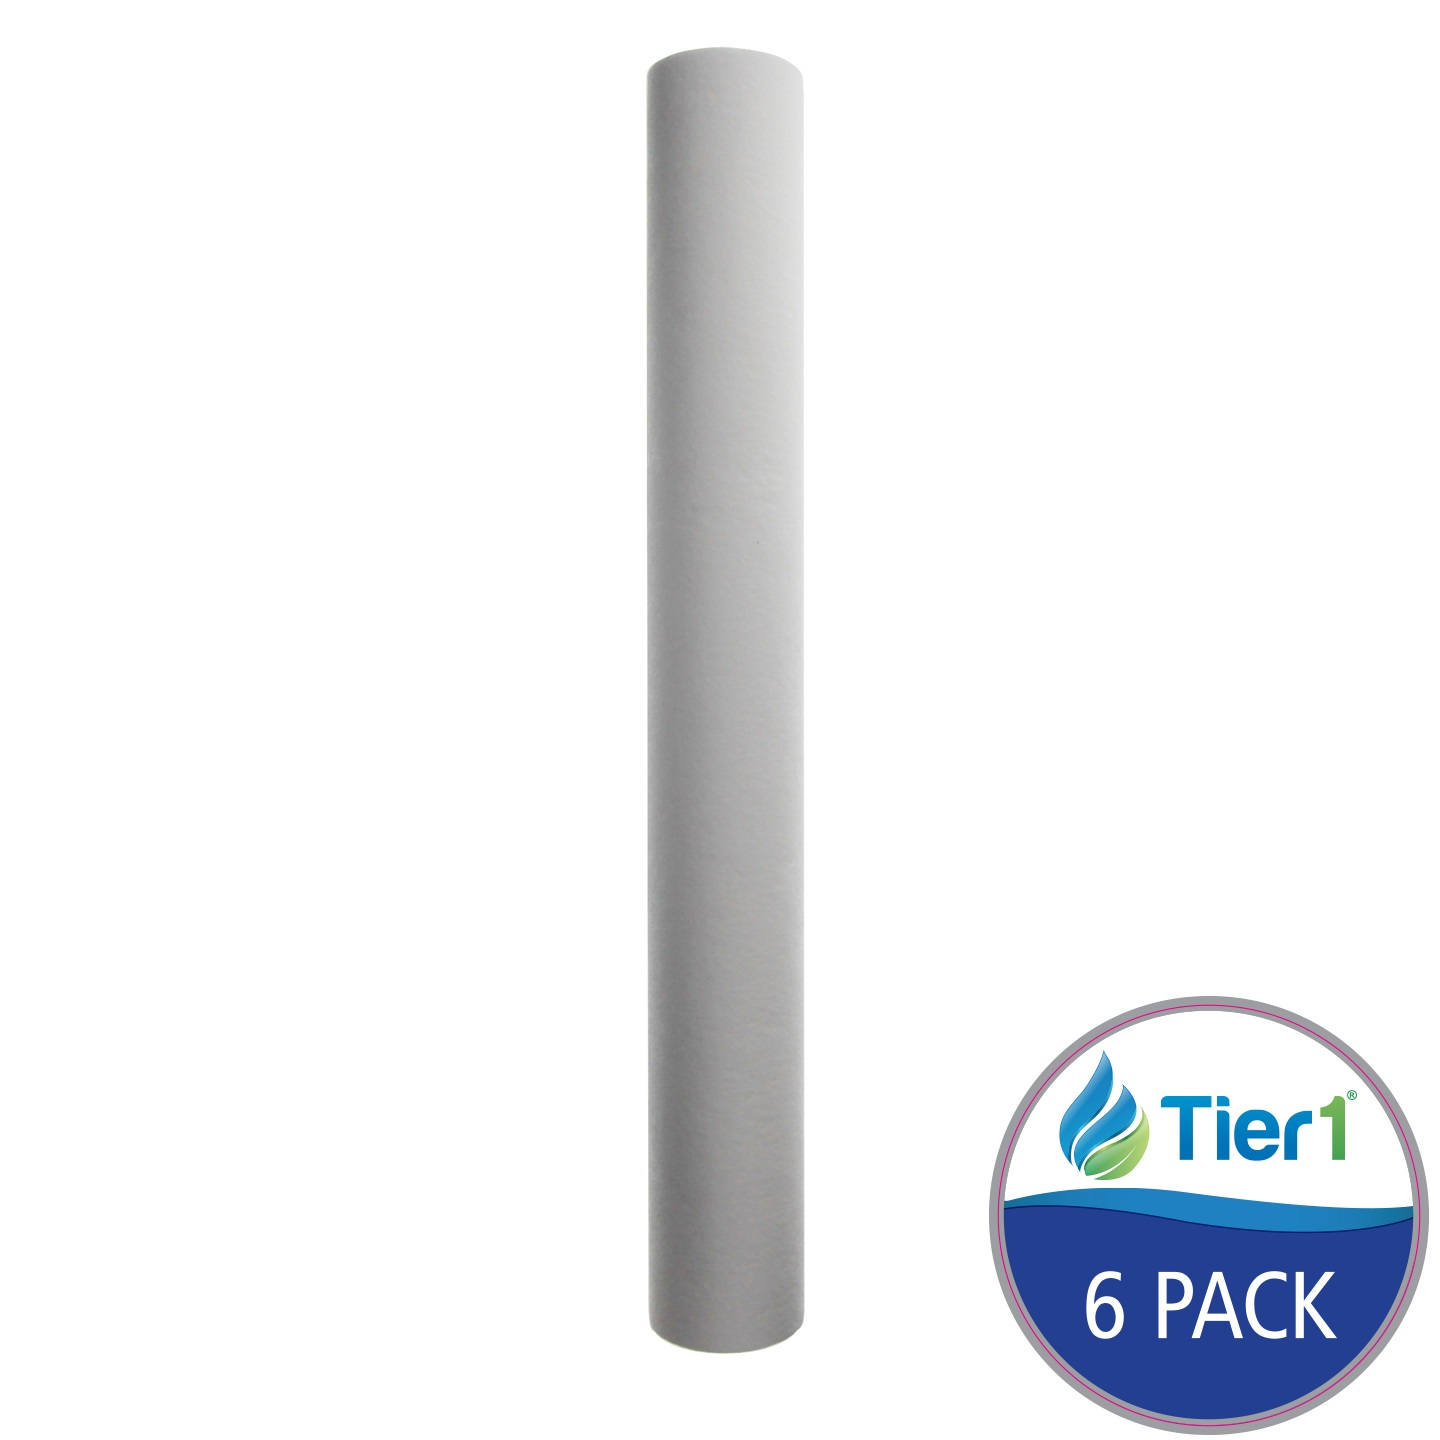 20 X 2.5 Spun Wound Polypropylene Replacement Filter by Tier1 (10 micron) (6-Pack) TIER1_P10_20_6_PACK